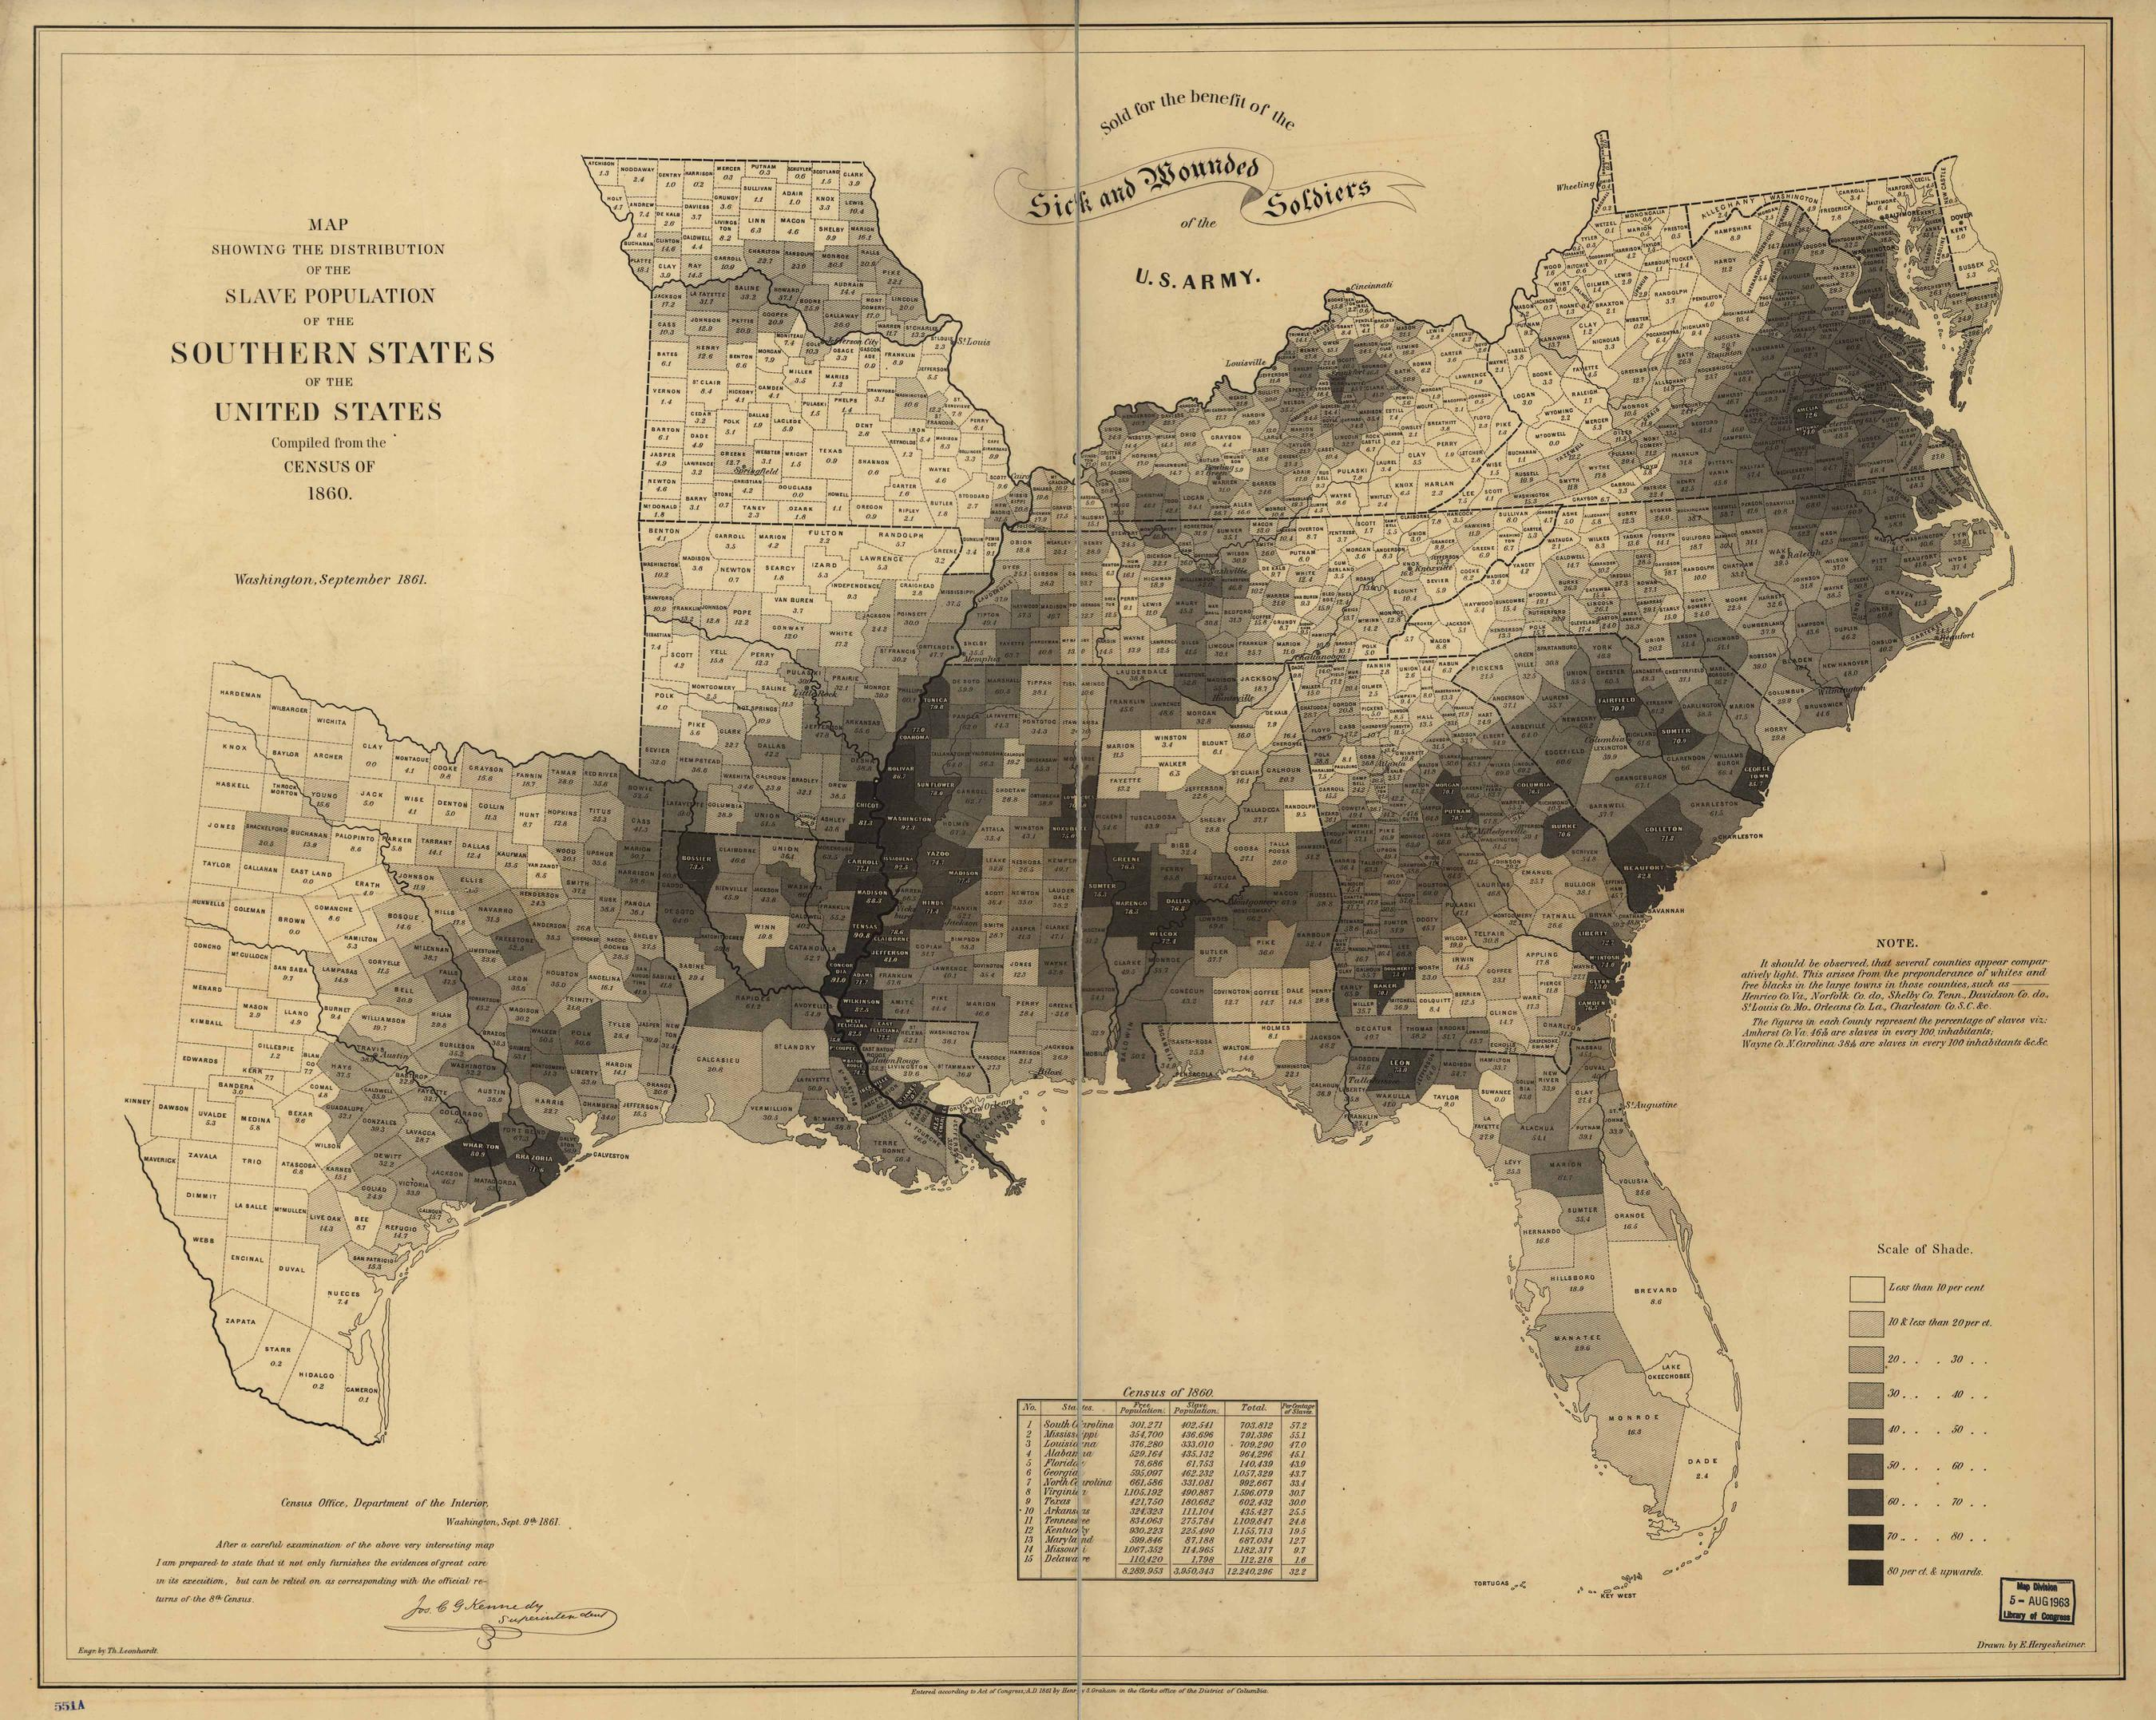 just a reminder that the maps like this one have a bitter past above is a map produced in 1861 at the start of the civil war based on census data from